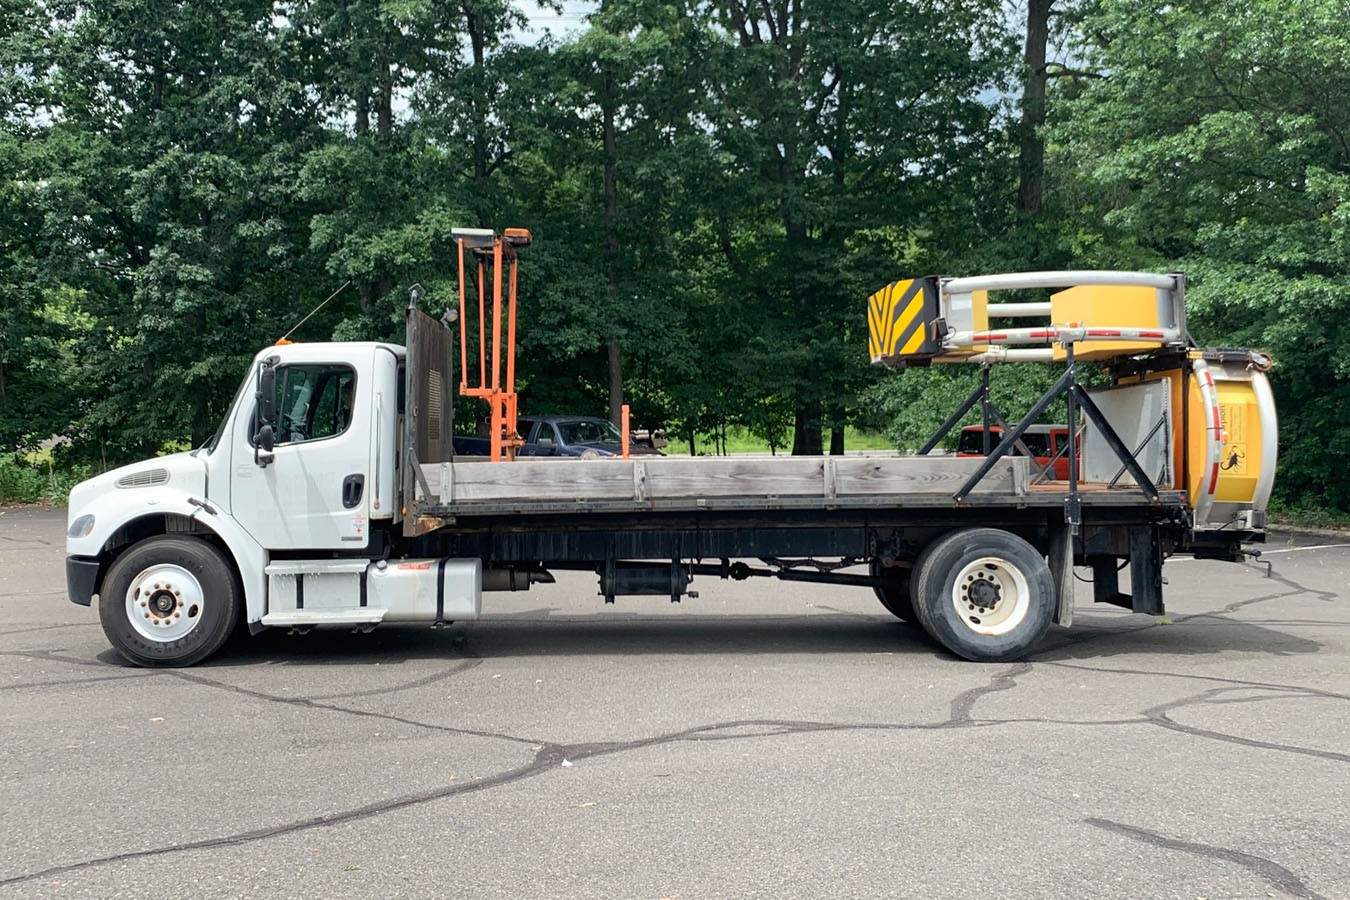 Used, 2004, Other, FREIGHTLINER M2-106 W/ SCORPION ATTENUATOR, Other